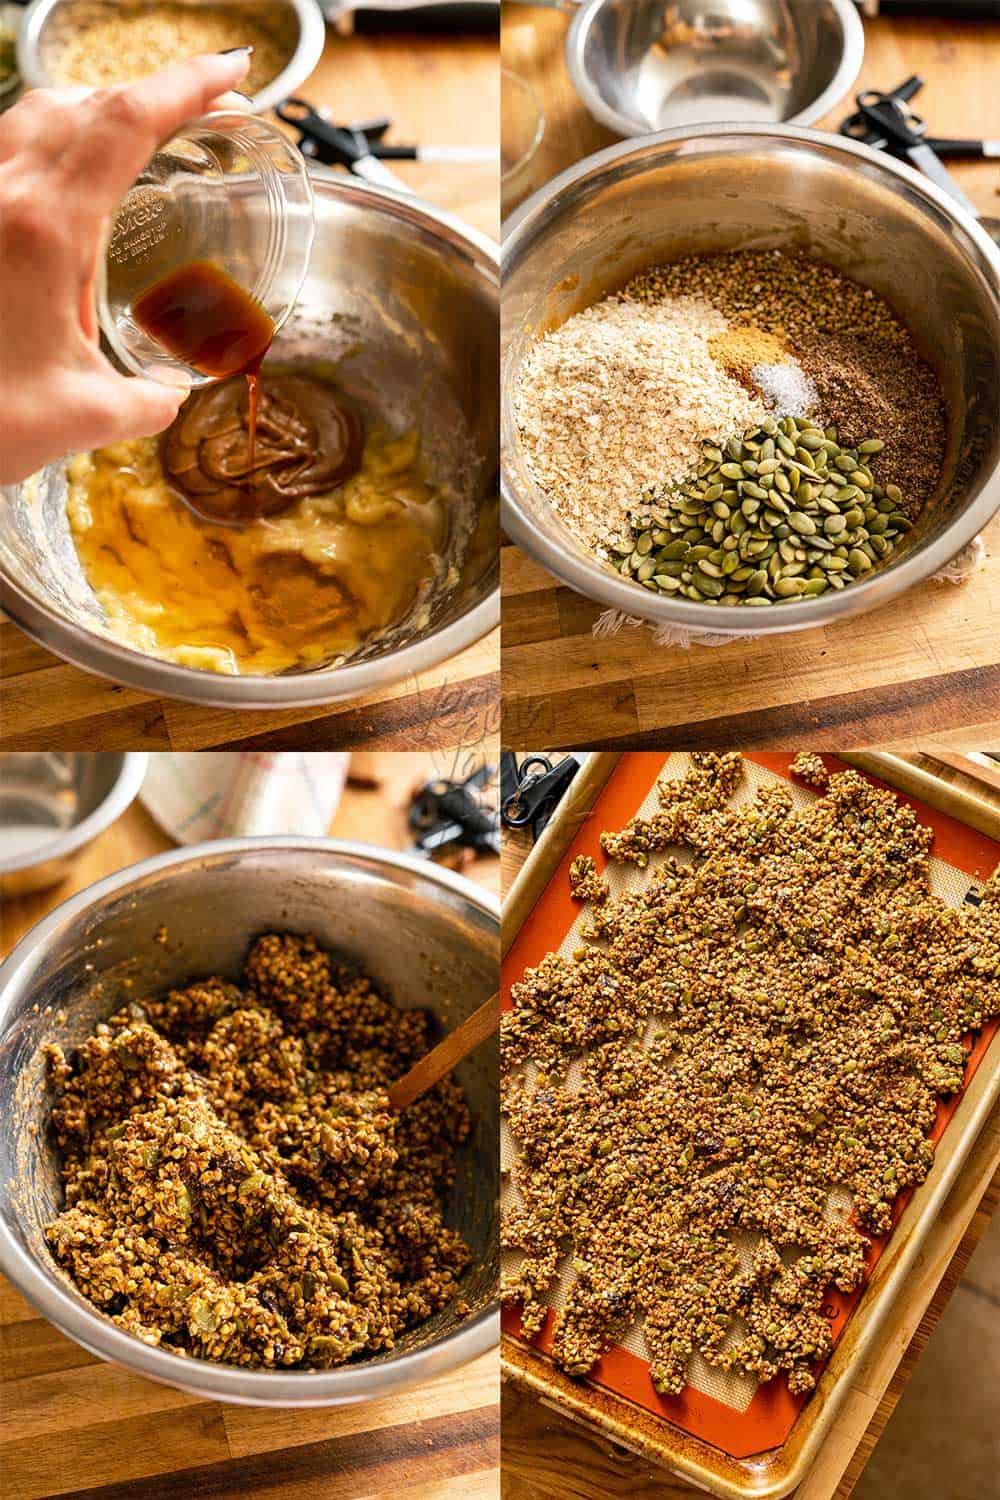 Image collage of mixing and stirring granola